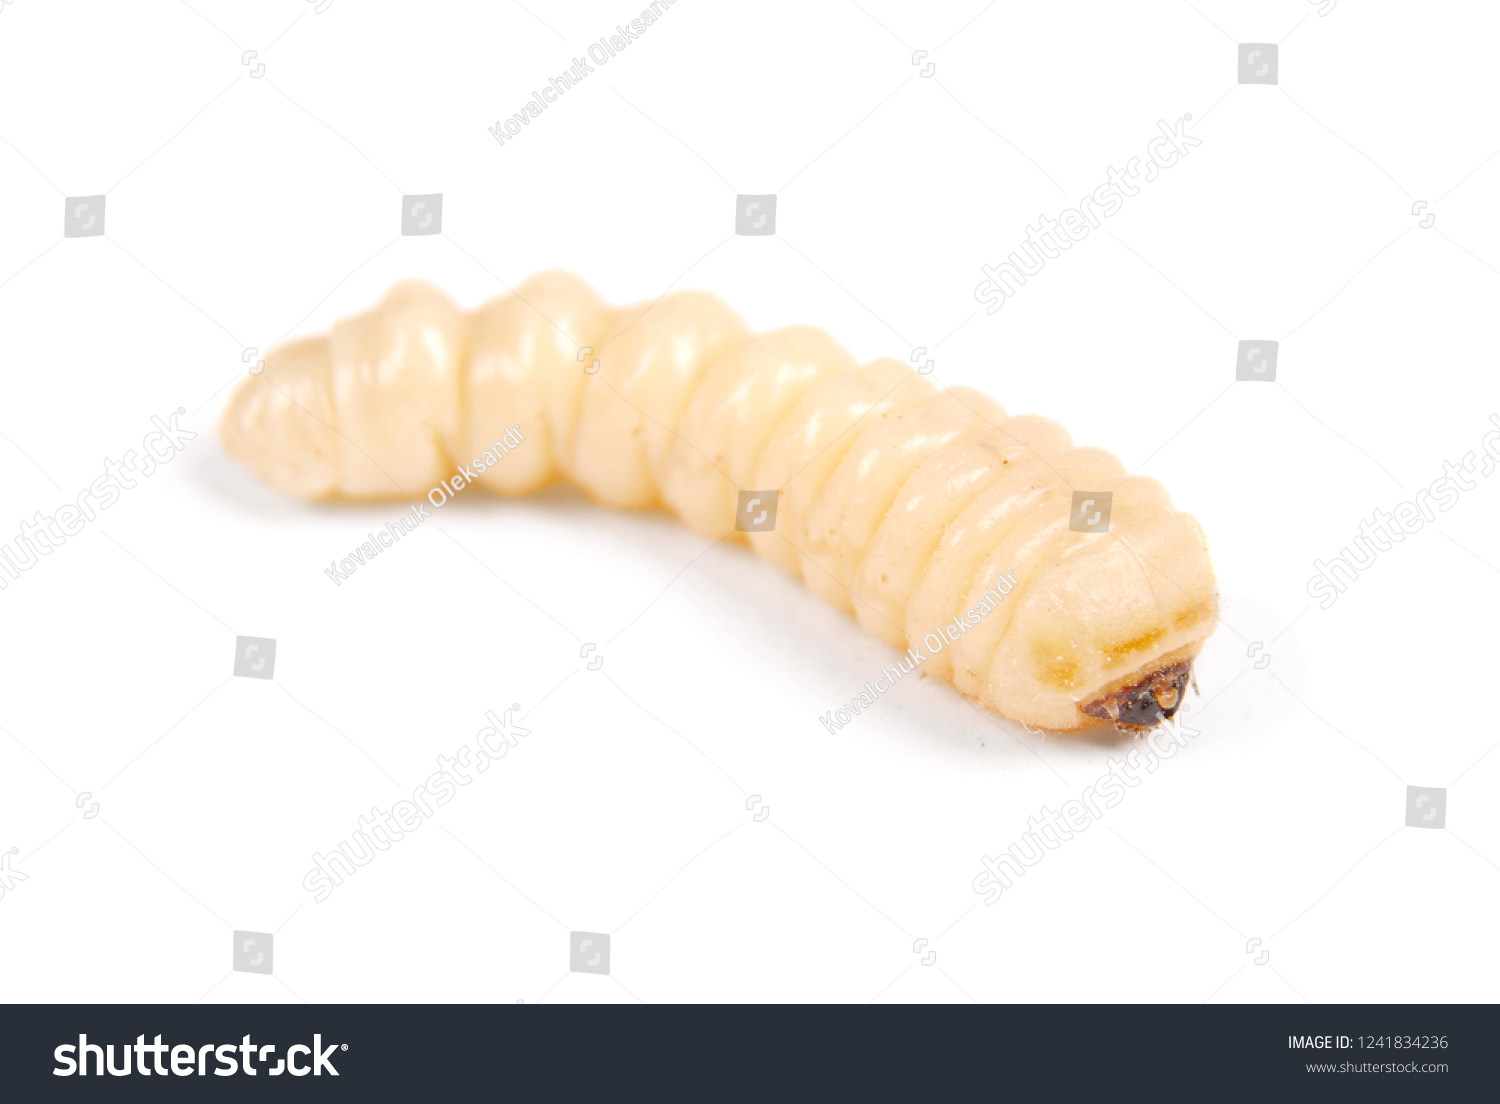 Larva bark beetle (Scolytinae). Larva of Bark beetles legless isolated on white background. #1241834236